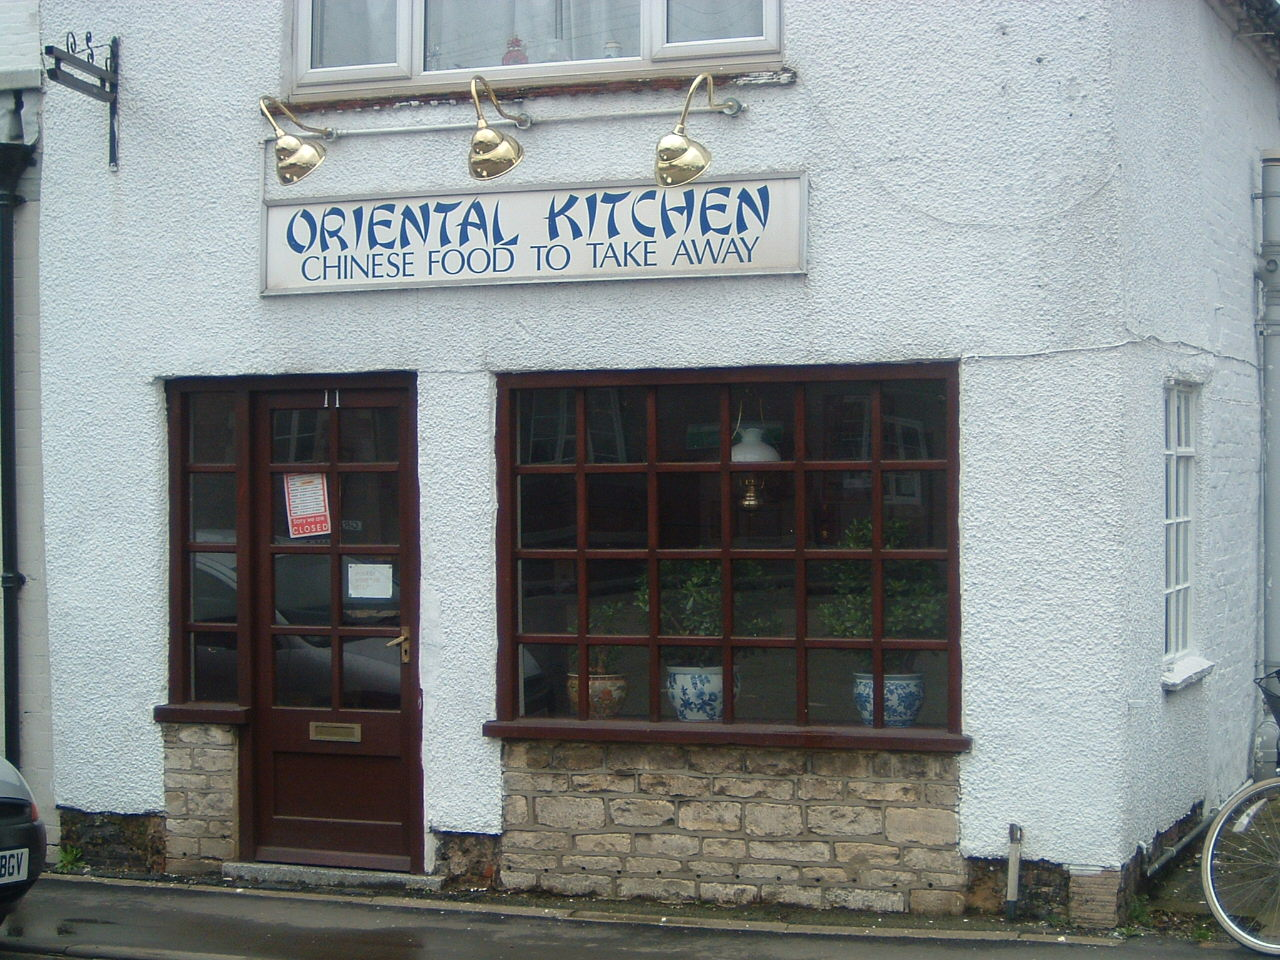 Eating Places in the Bottesford Area   Discovering Bottesford ...